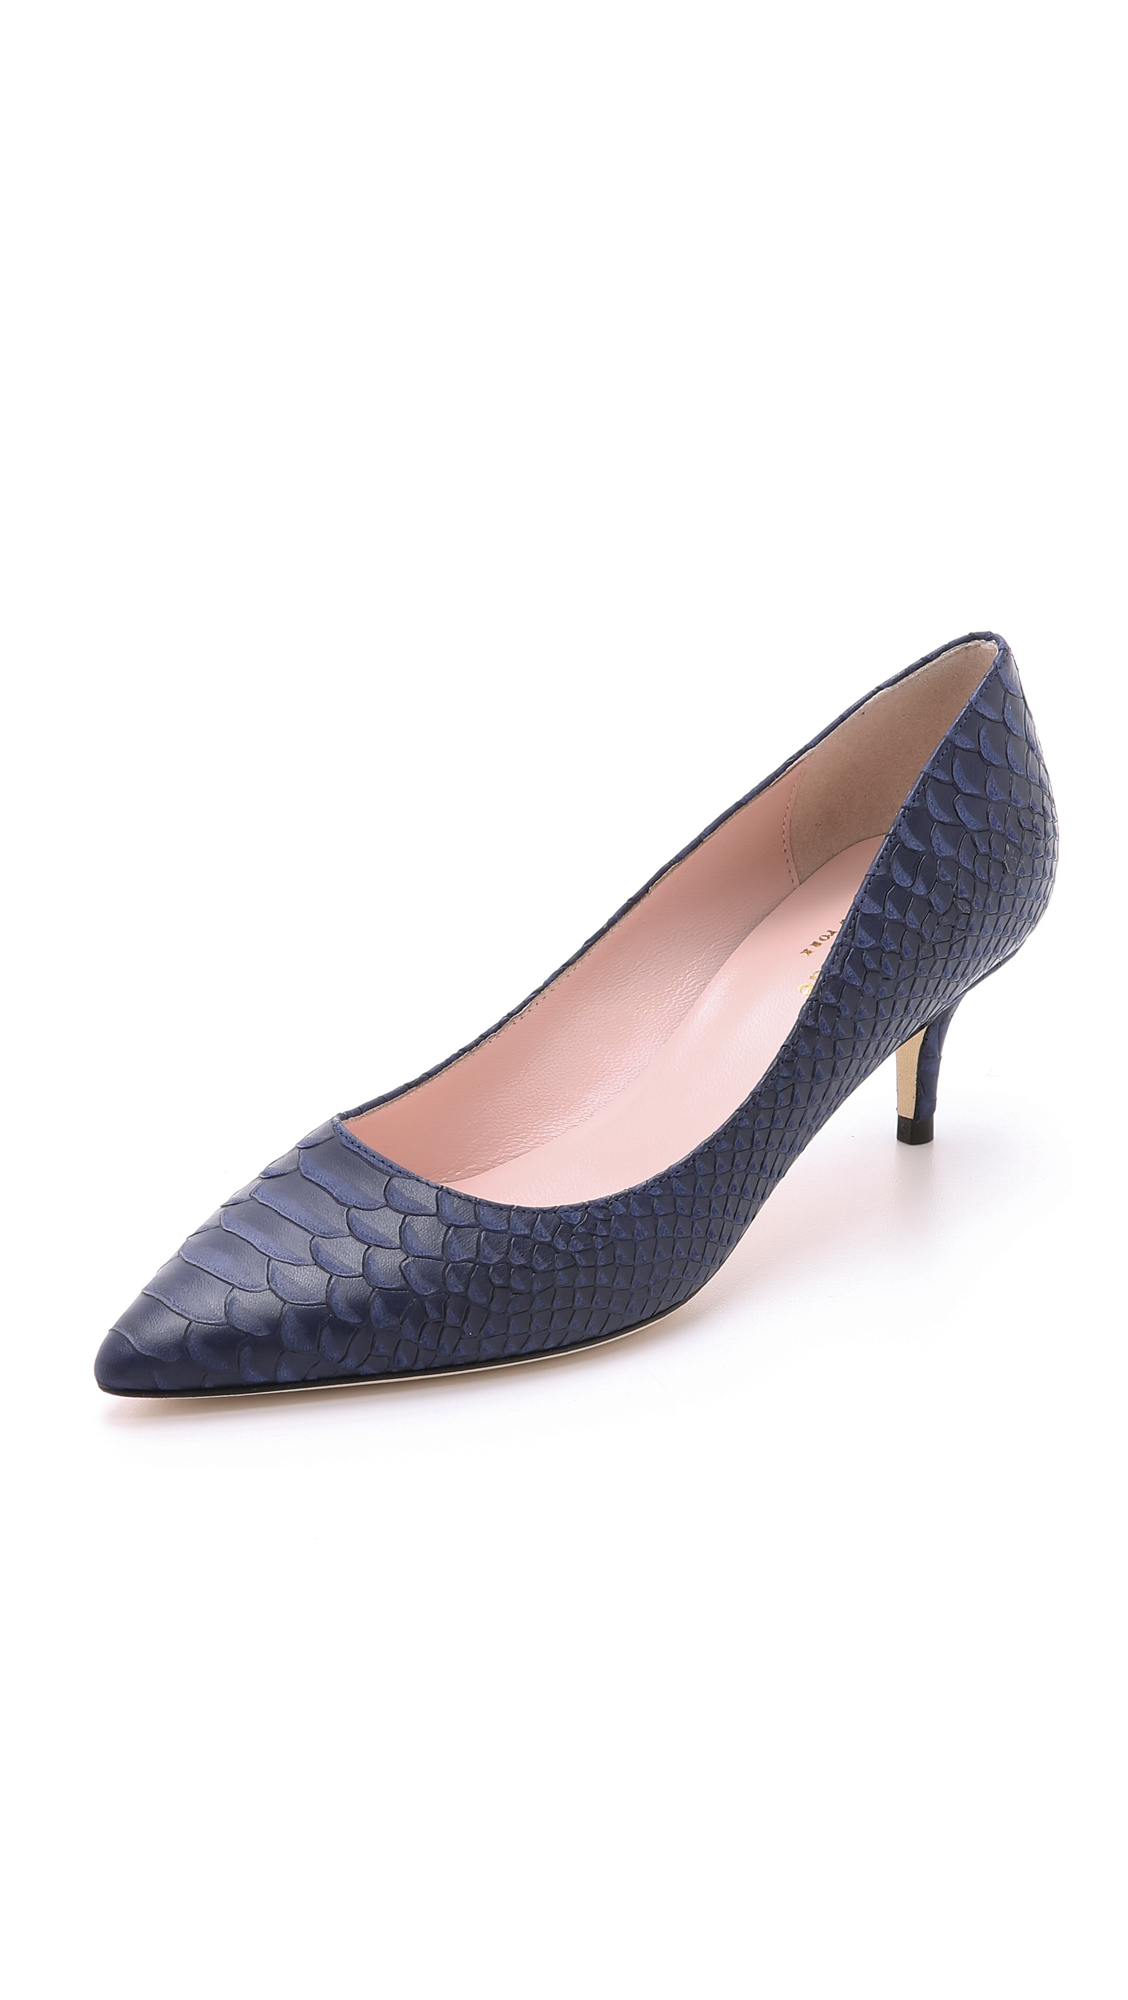 Navy Kitten Heel Pumps 2mI5Yl6r